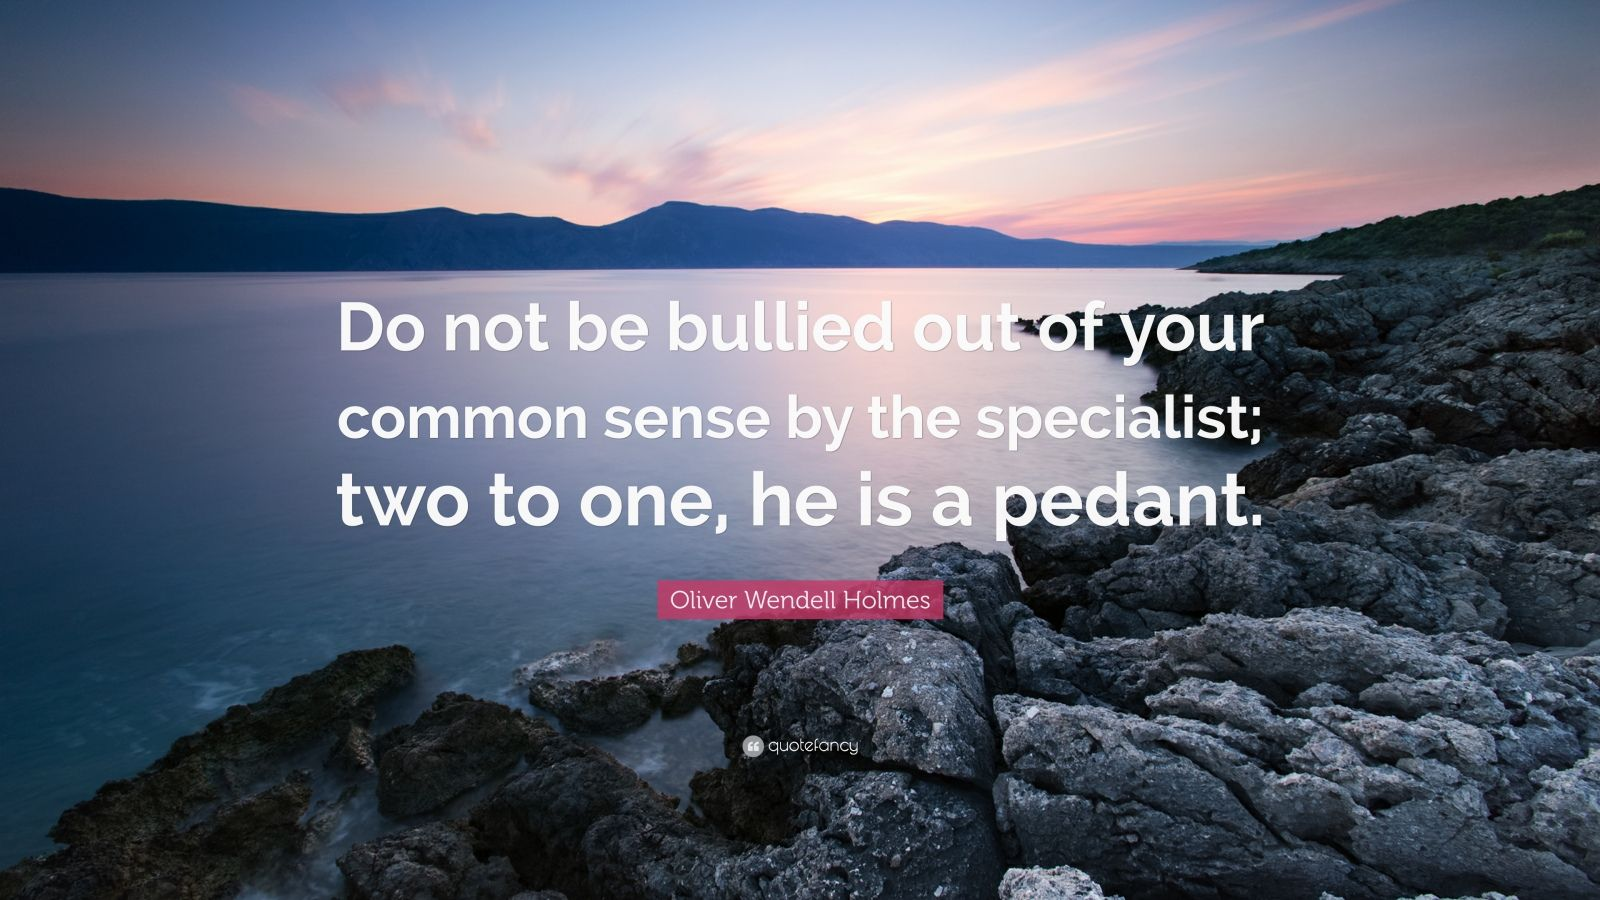 """Oliver Wendell Holmes Quote: """"Do not be bullied out of your common sense by the specialist; two to one, he is a pedant."""""""